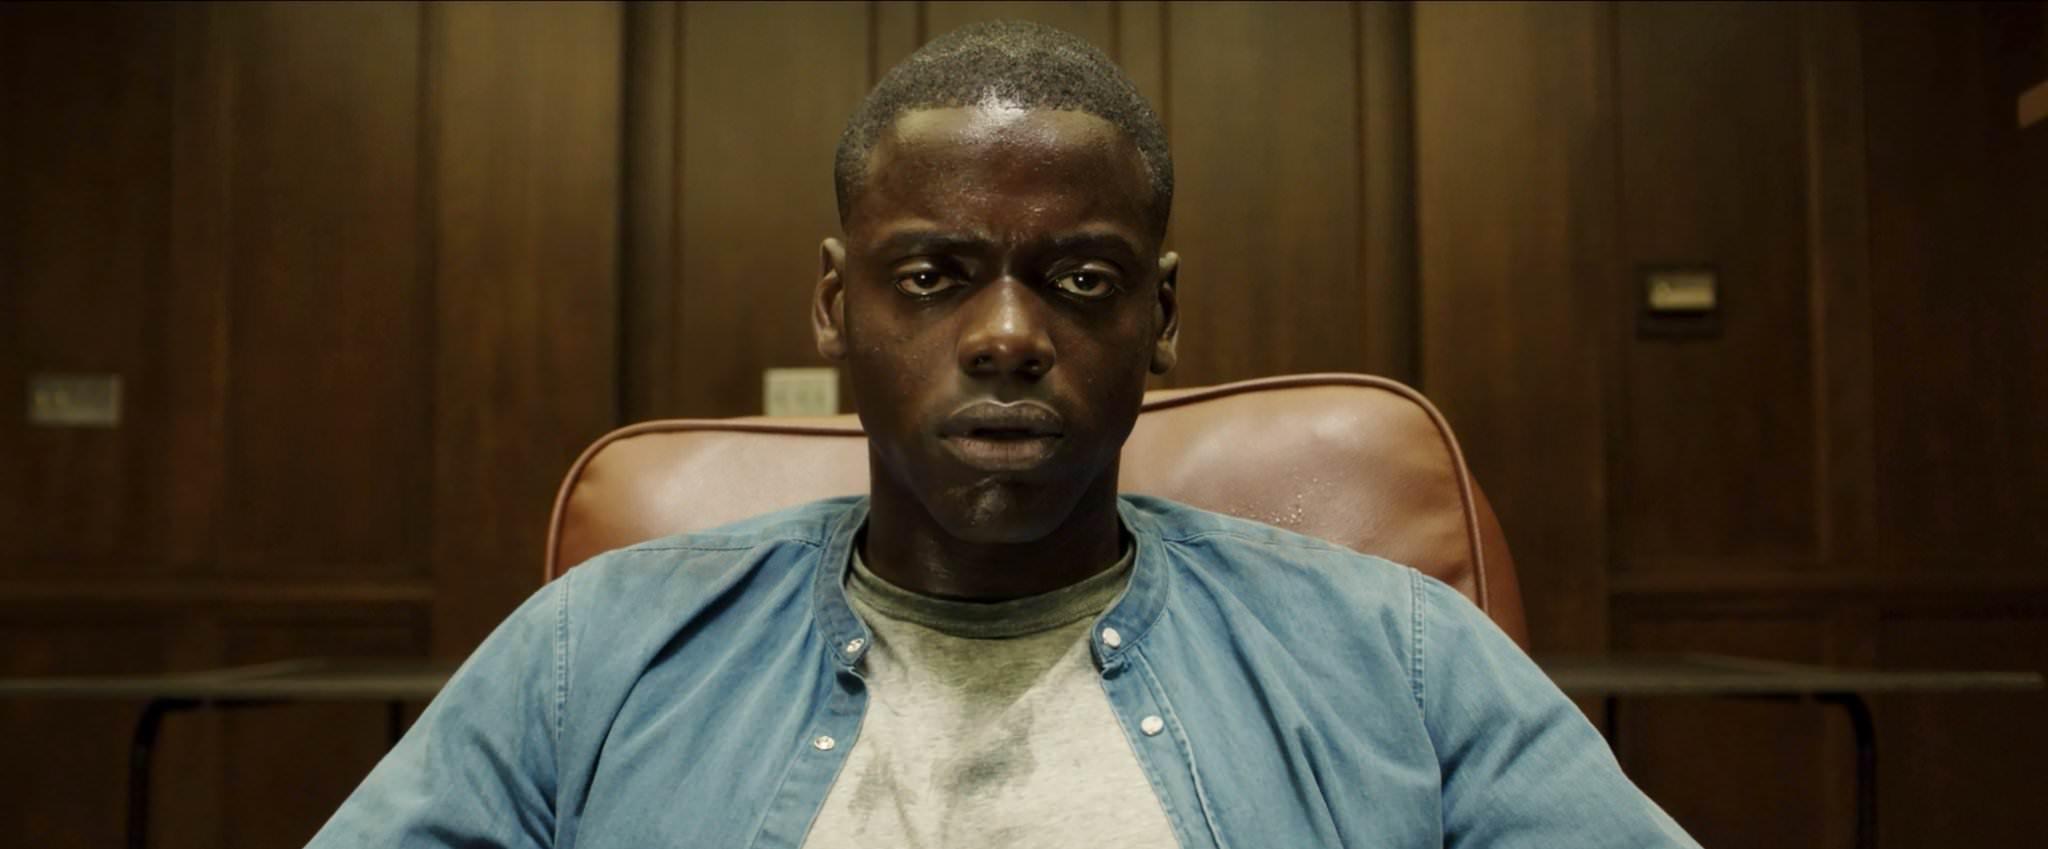 """Reviewed earlier on Op-Rob, """"Get Out"""" is the best picture on this list, and I don't feel the race is particularly close. It is a seamless film from start to finish: great acting, momentous direction, and a gut-punch cultural message to boot. Jordan Peele's historical knowledge of the horror genre cannot be understated with this film. It is a powerhouse directorial debut if there ever was one."""